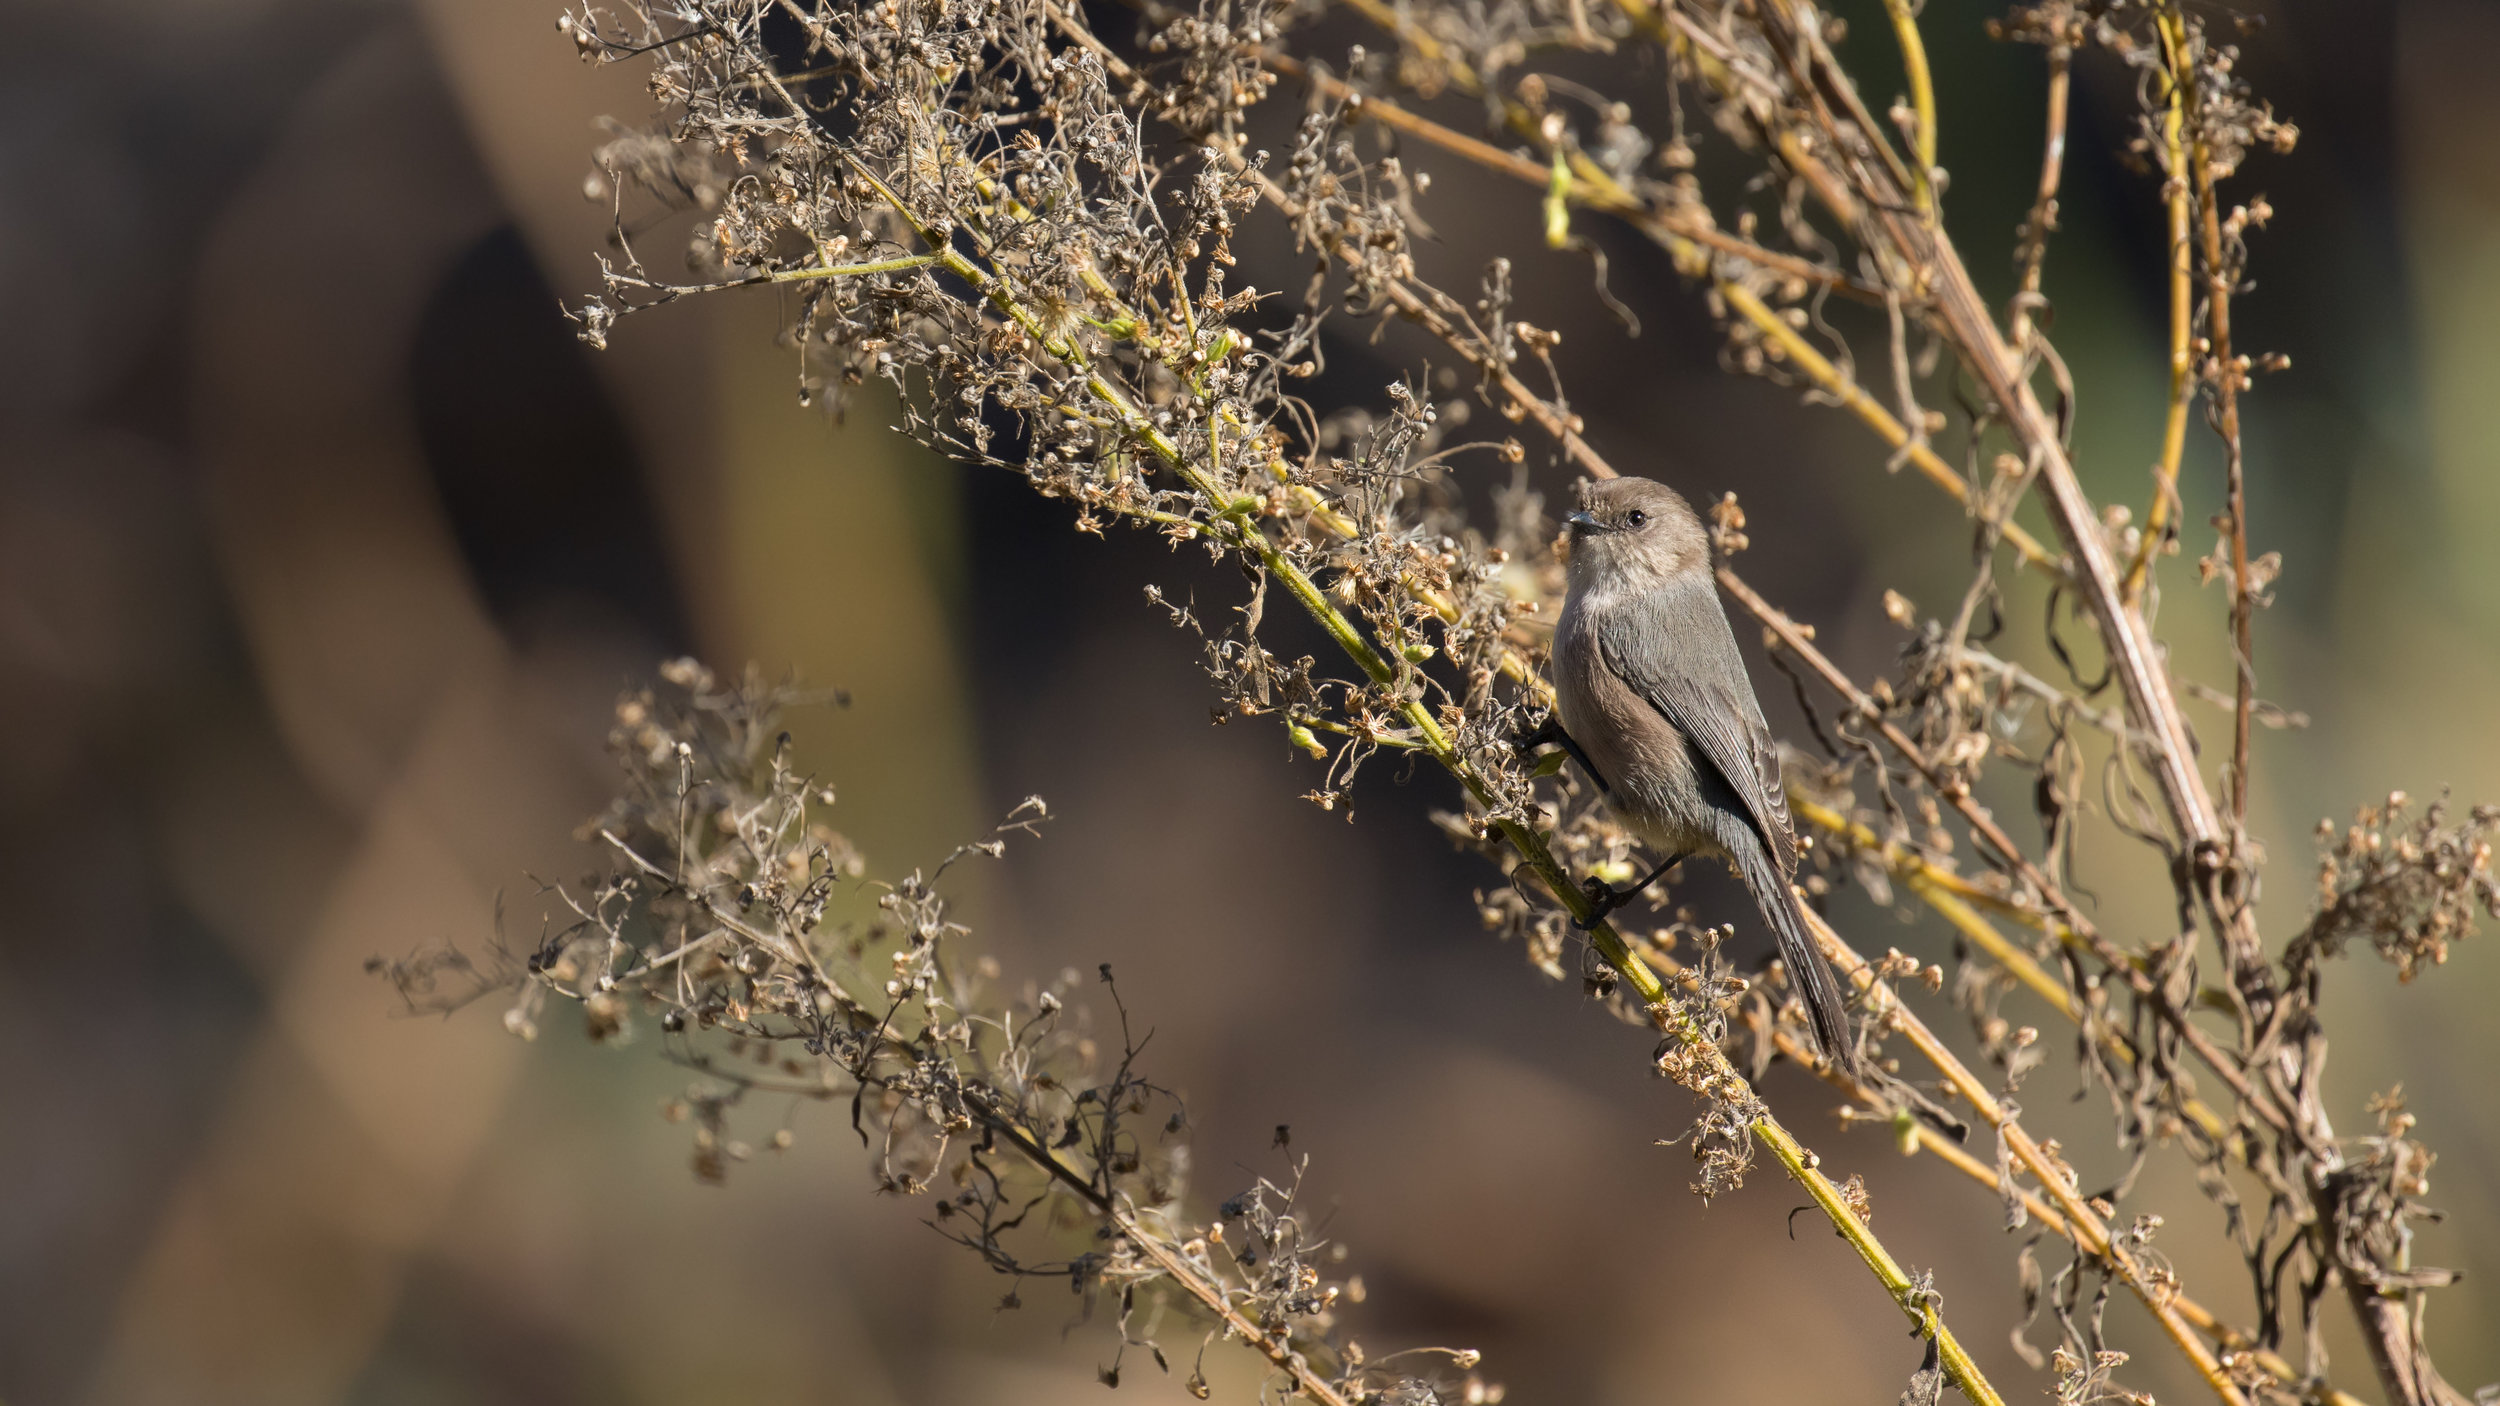 American Bushtit (Psaltriparus minimus) at Laguna Niguel Regional Park, United States. December 2015. Not baited. Not called in.